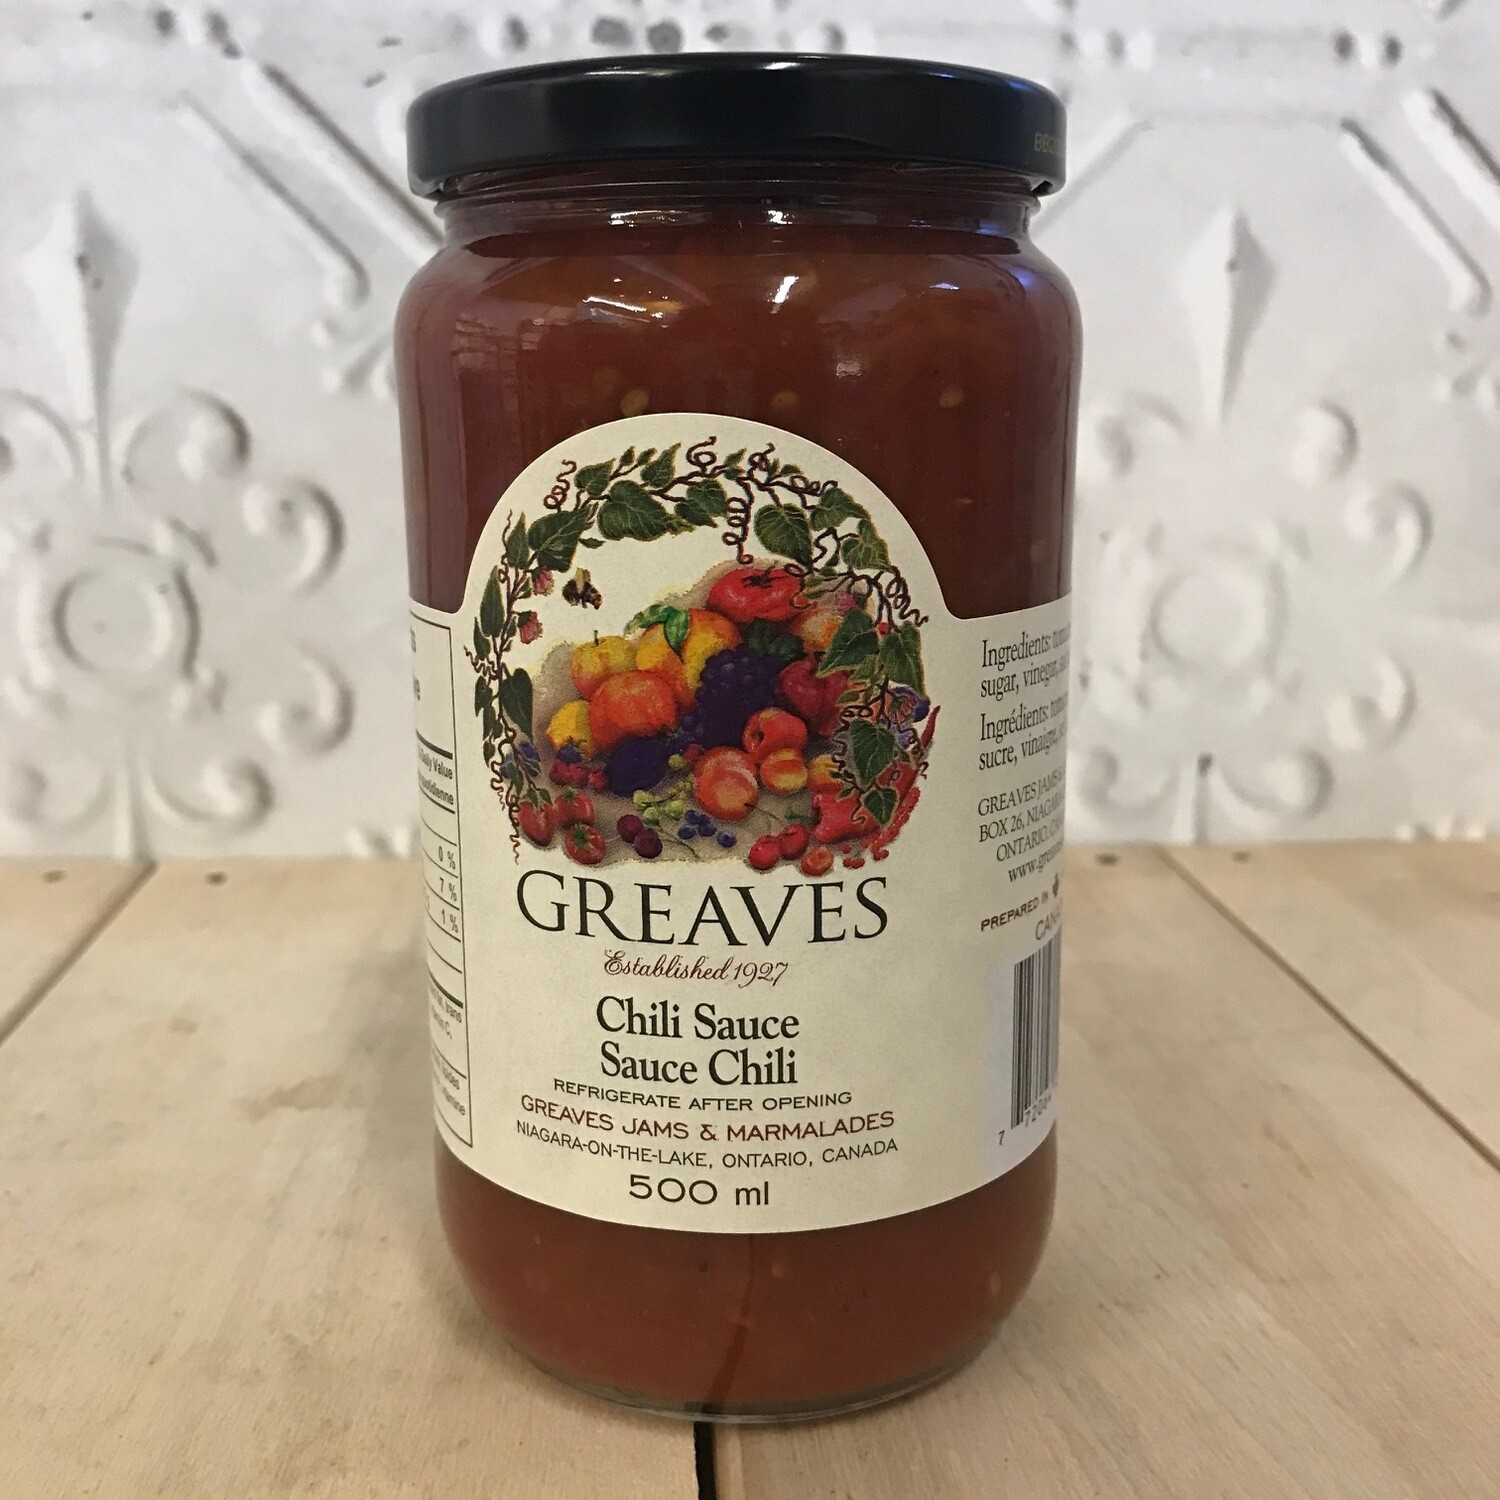 GREAVES Chili Sauce 500ml